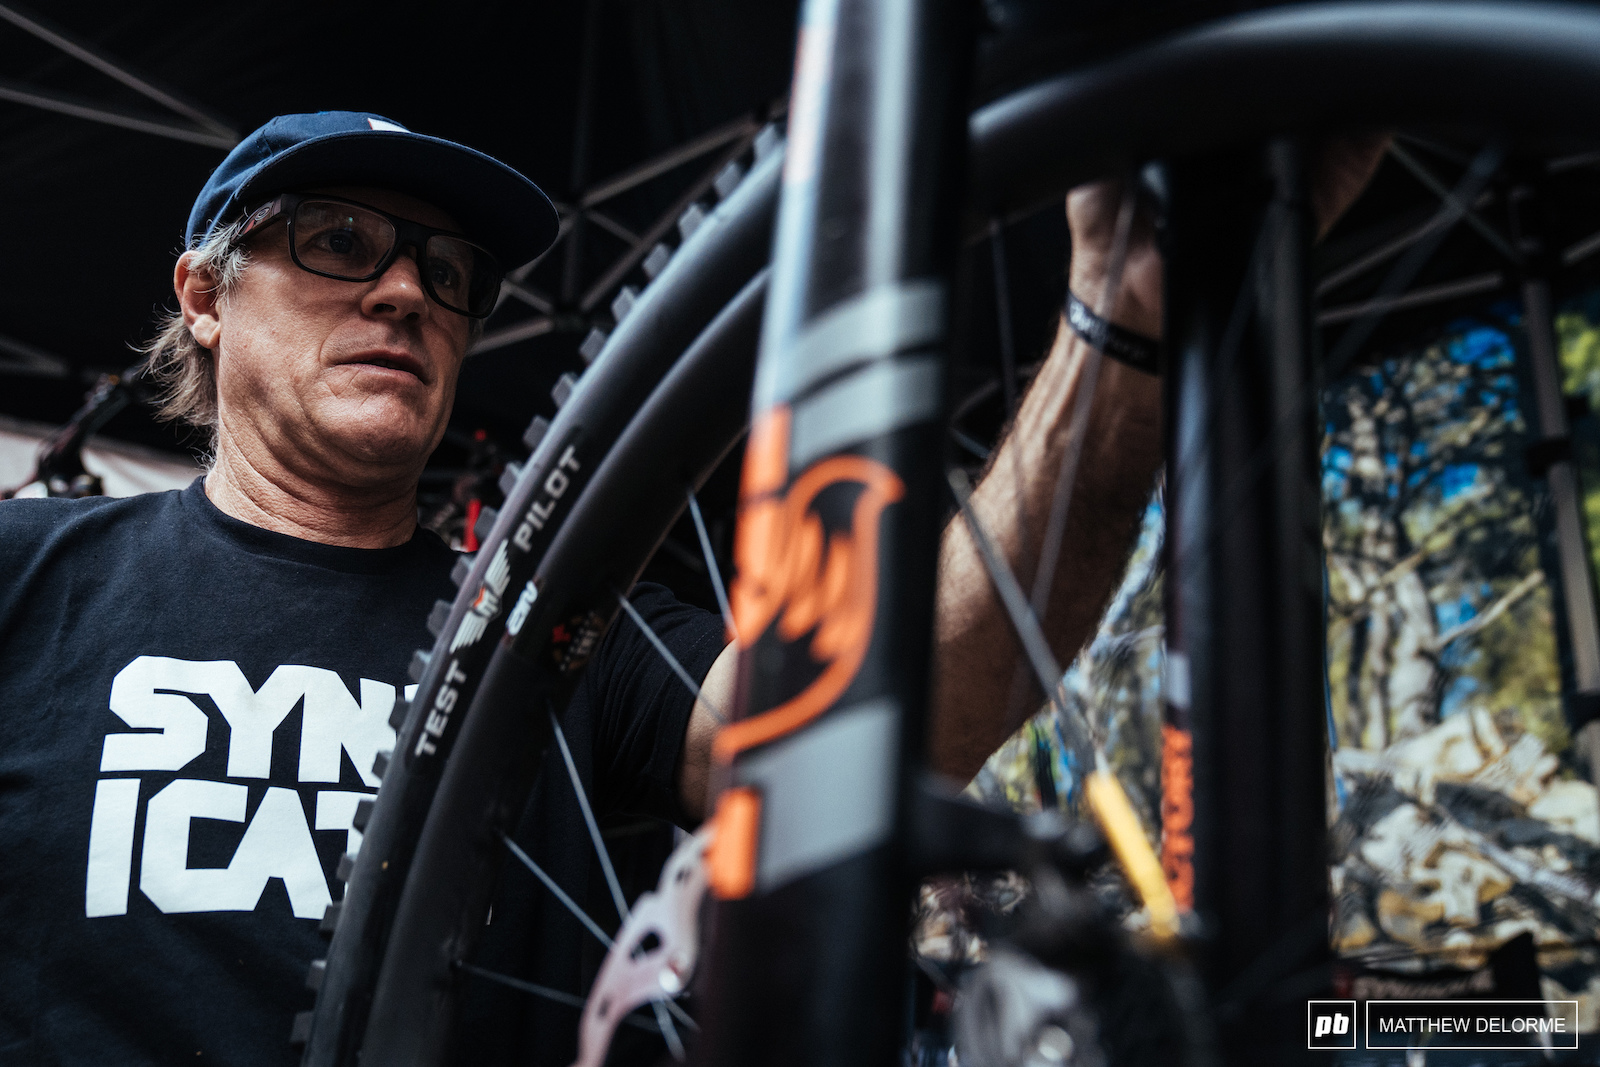 Dougie Fresh puts the finishing touches on a fresh whip for Luca Shaw.